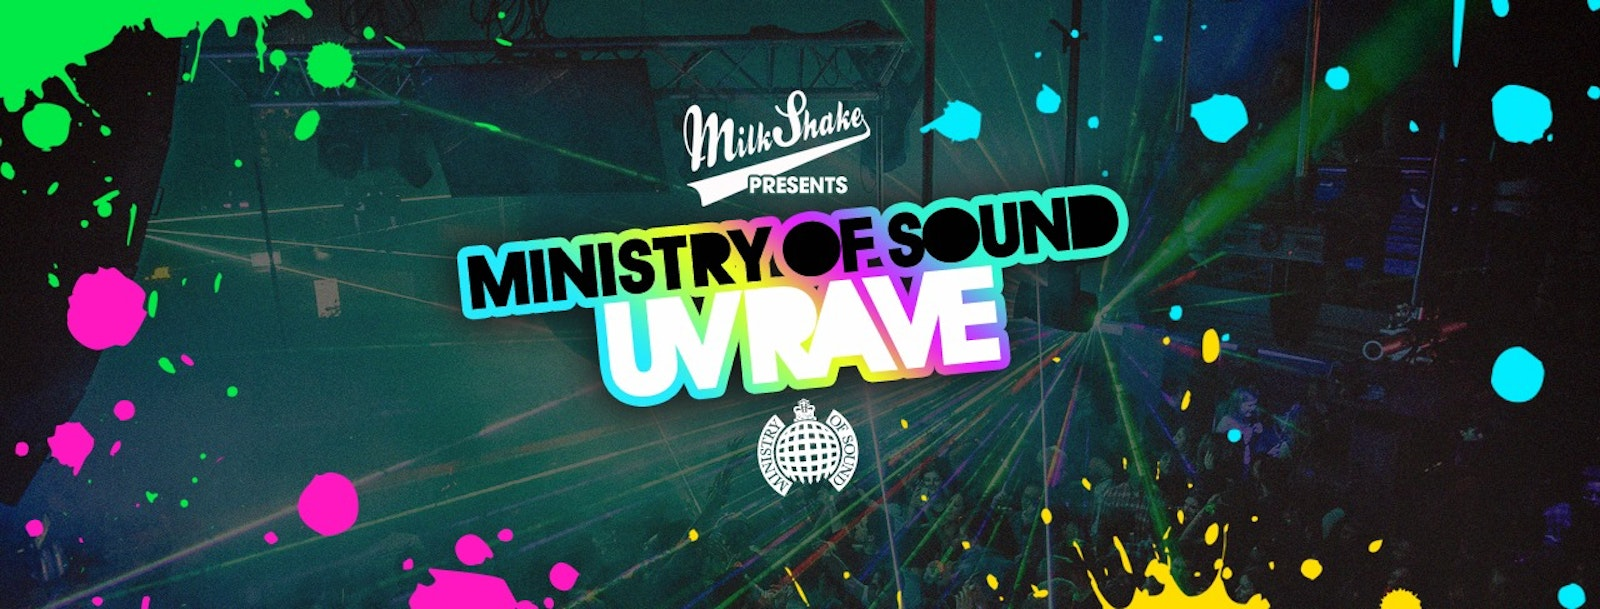 The Milkshake, Ministry of Sound UV Rave 2019 ⚡